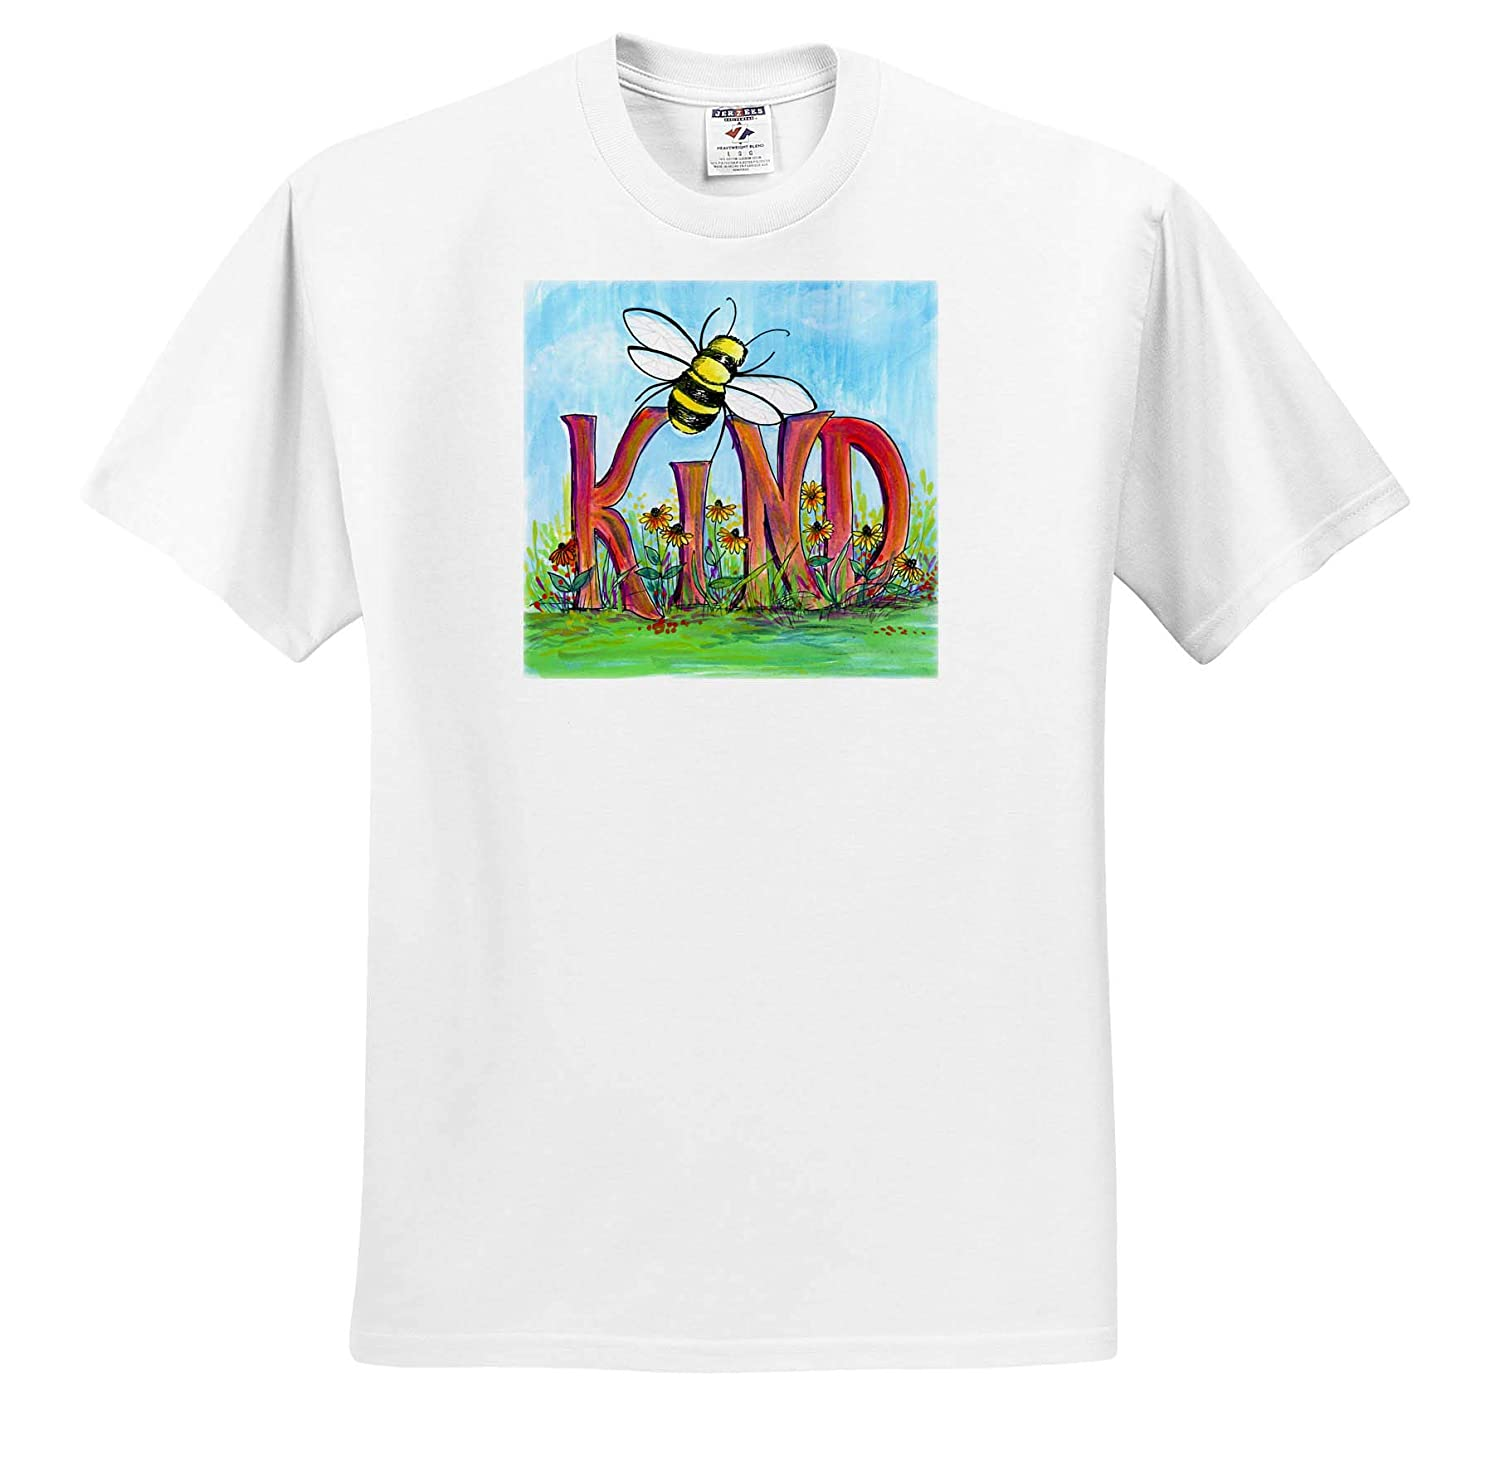 Bee Kind Painting Quotes ts/_319906 Adult T-Shirt XL 3dRose Amanda Levermann